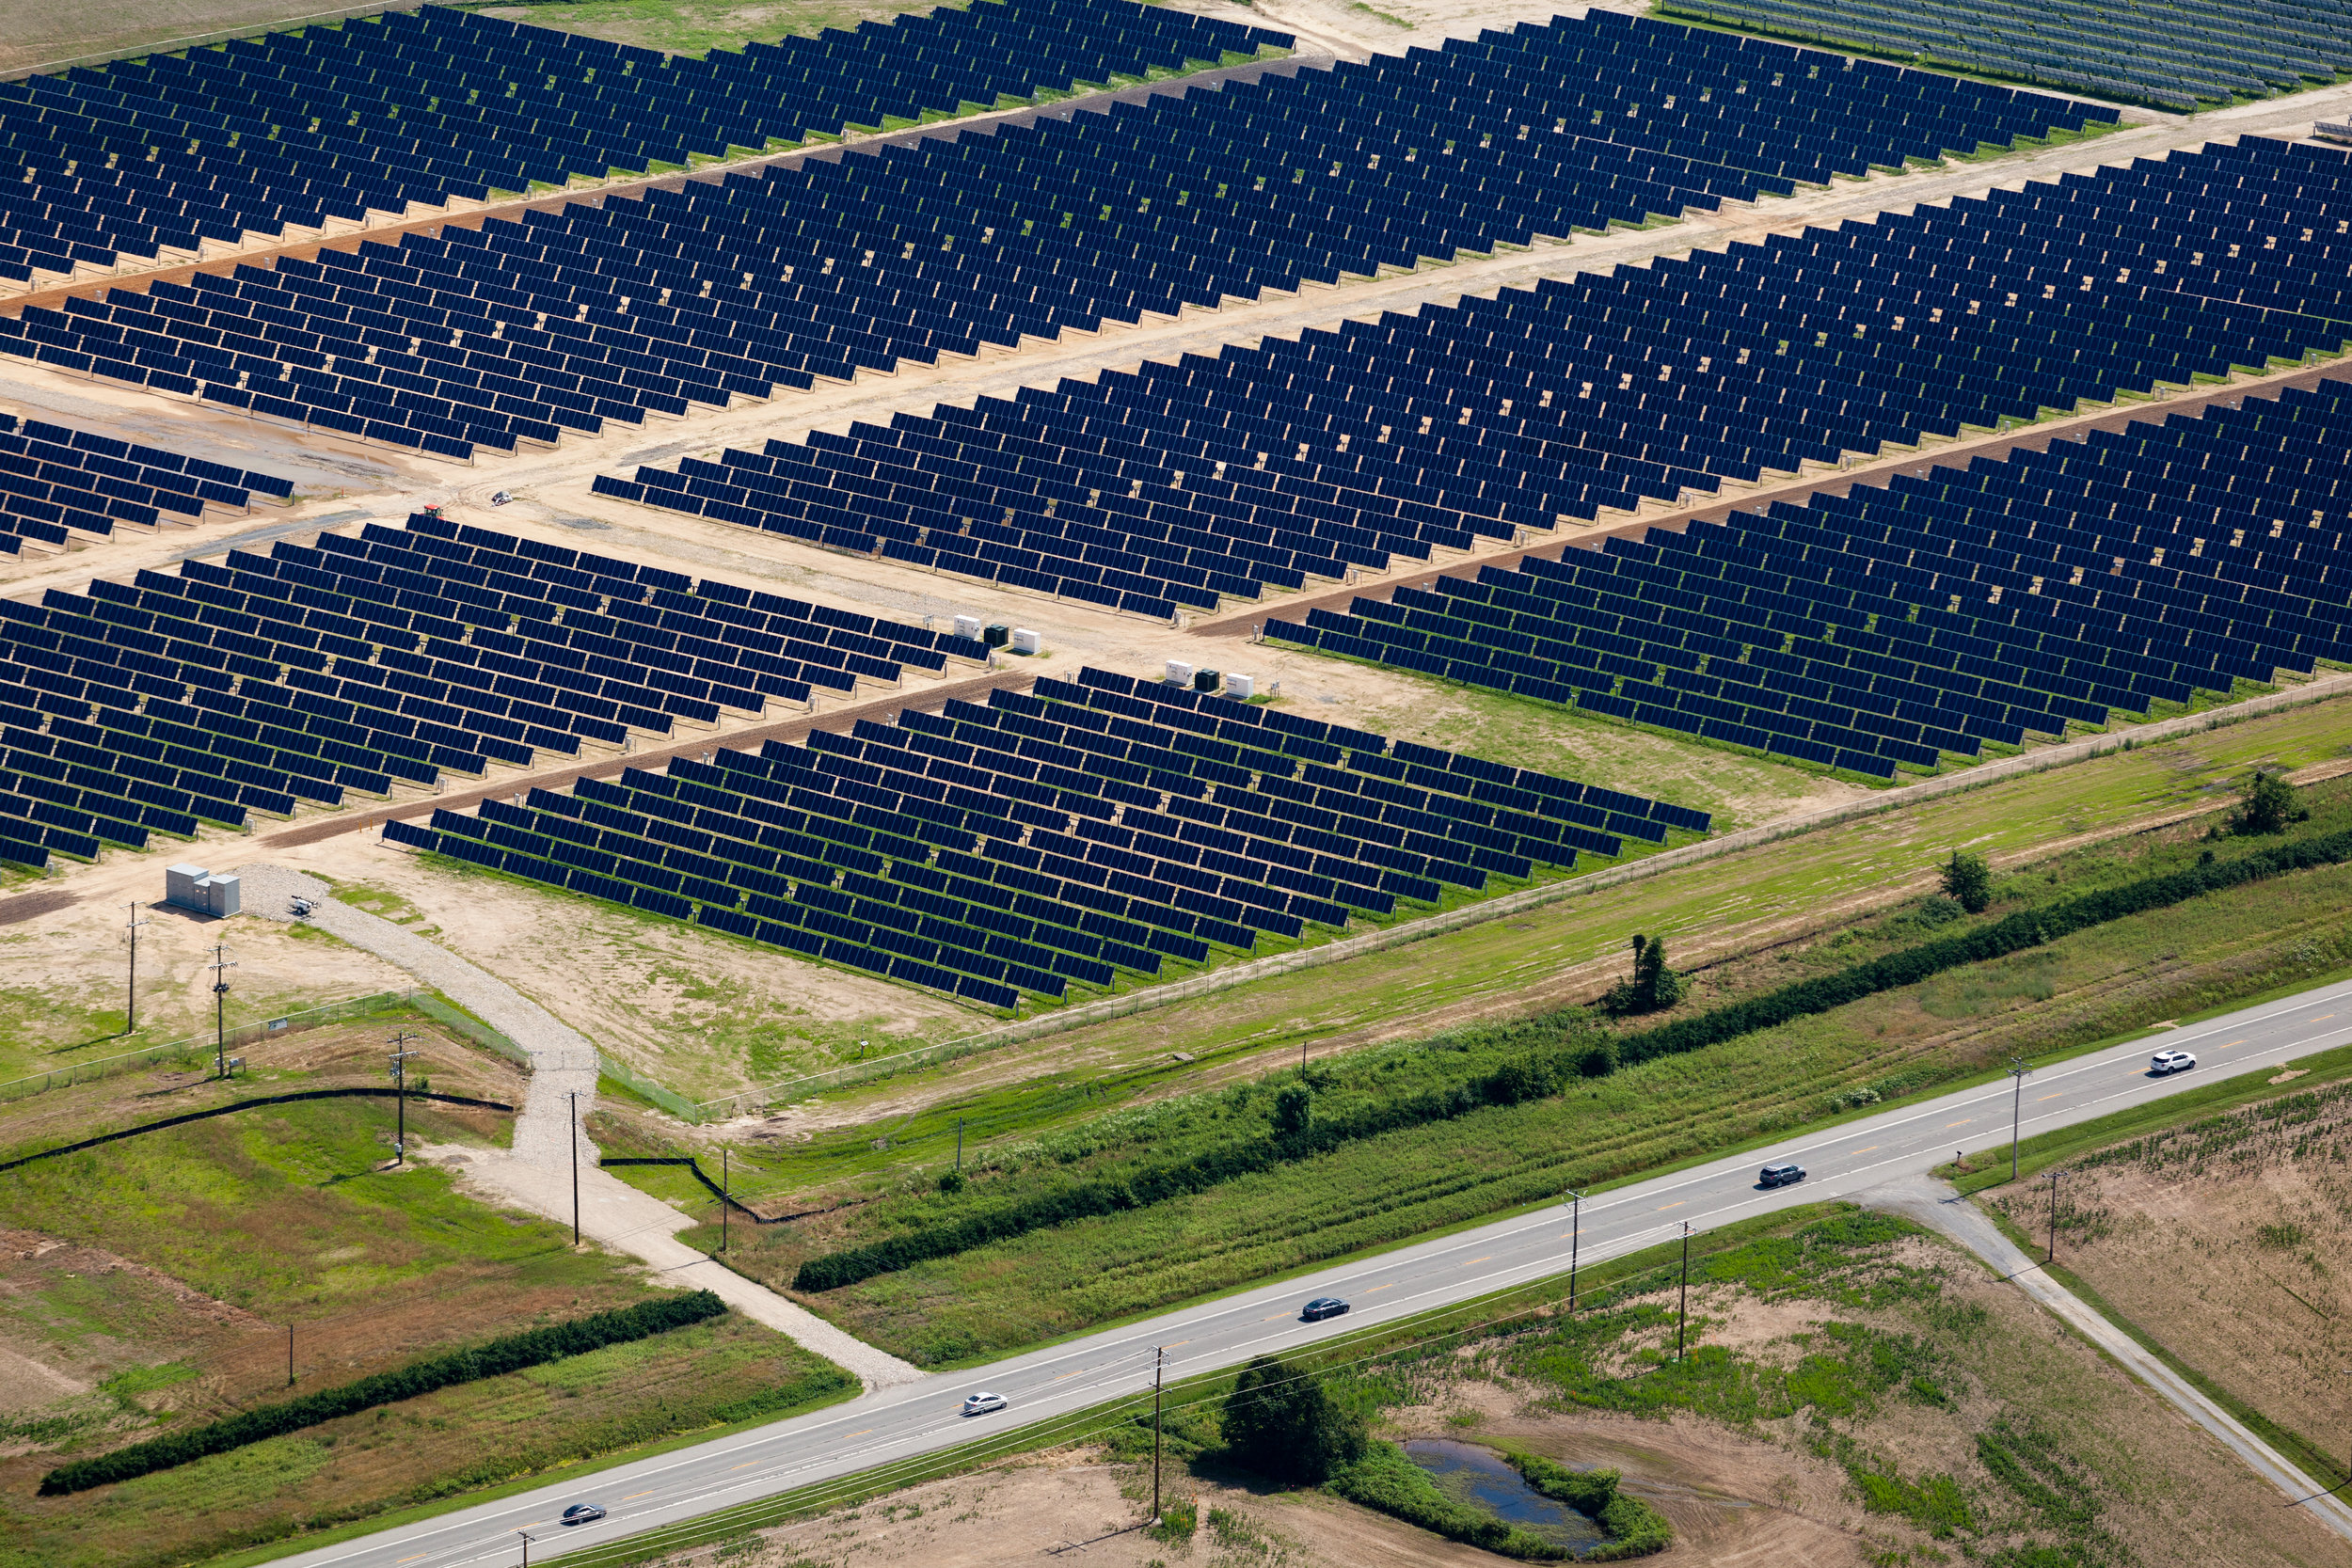 Solar panels in Queen Anne's County MD. Image by Chesapeake Bay Program via flickr.com